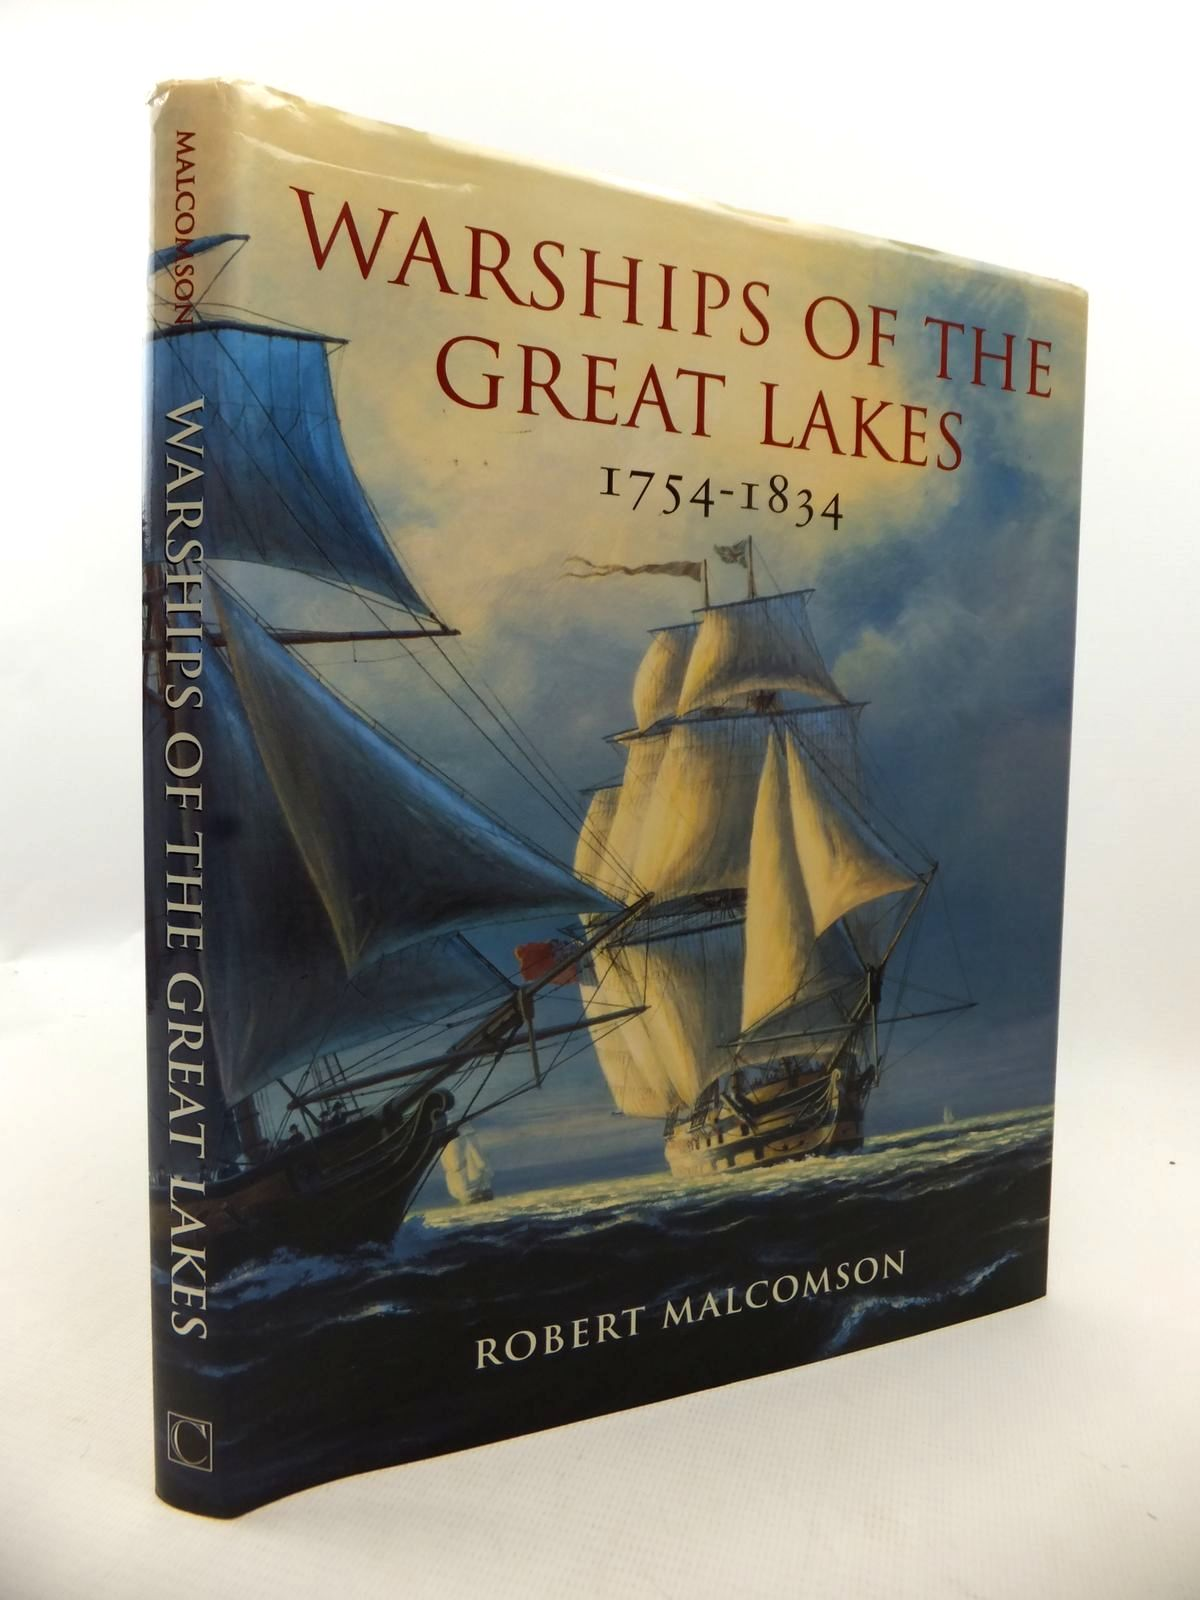 Photo of WARSHIPS OF THE GREAT LAKES 1754-1834 written by Malcomson, Robert published by Chatham Publishing (STOCK CODE: 1813135)  for sale by Stella & Rose's Books